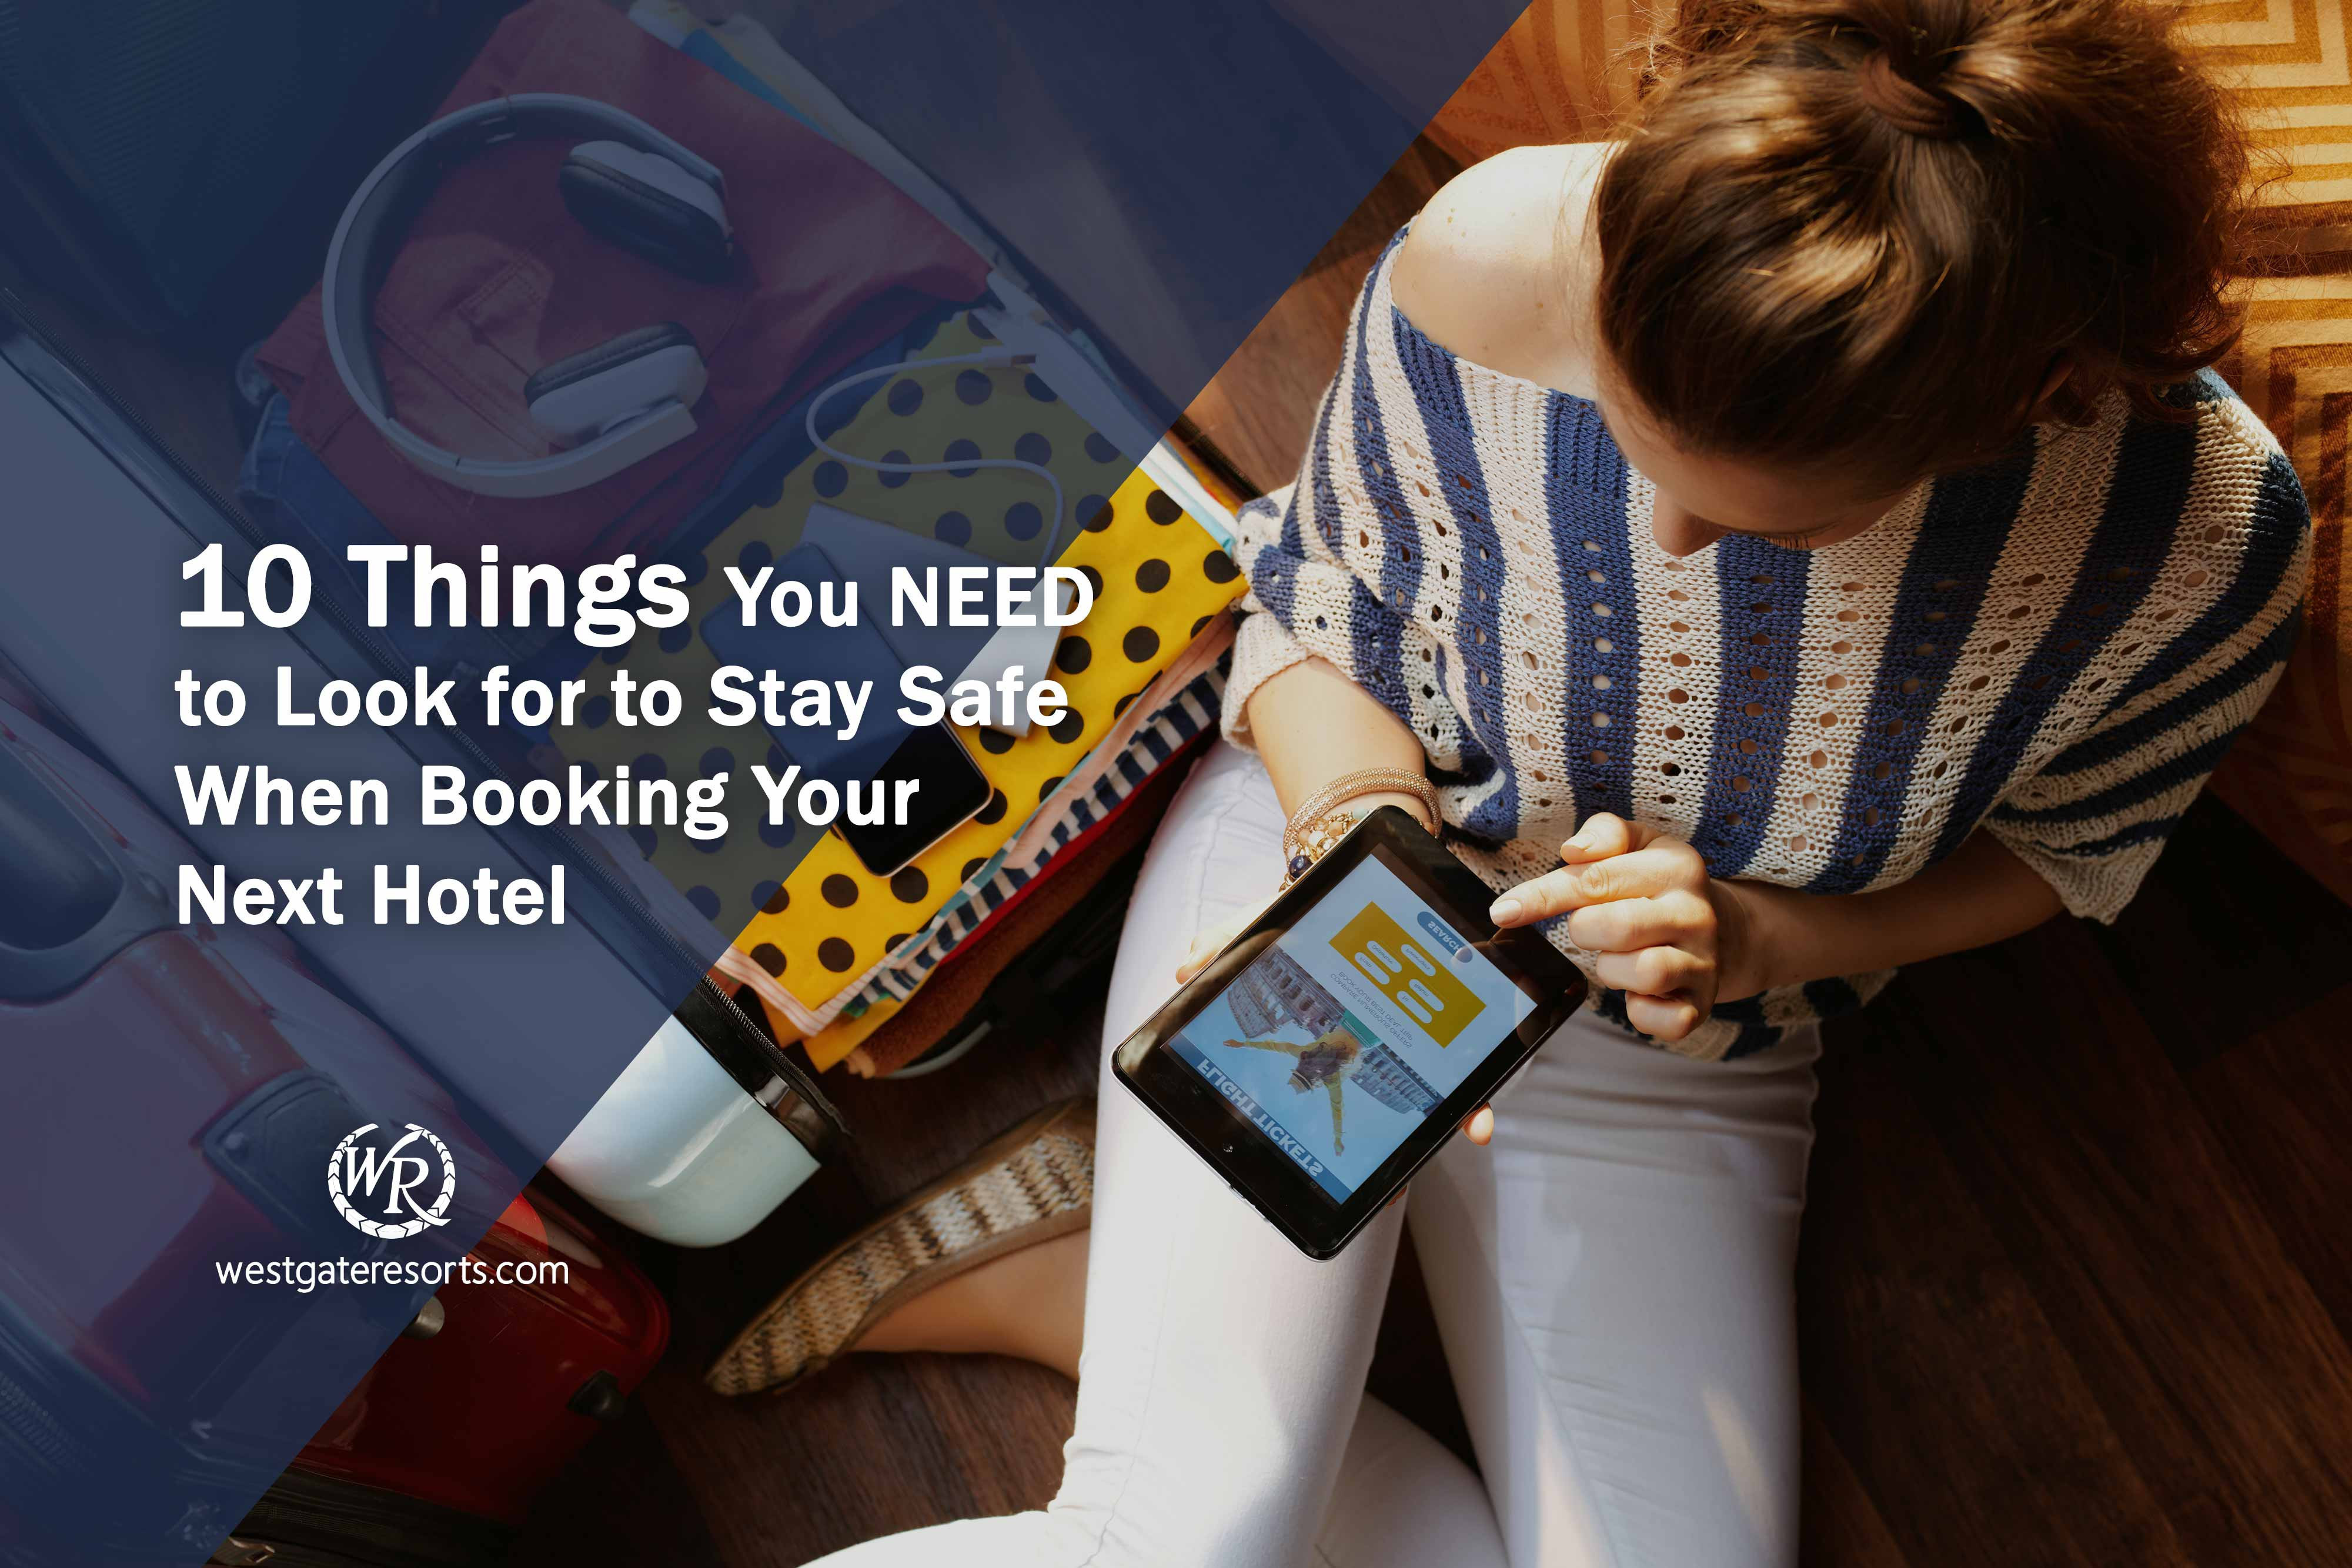 10 Things You NEED to Look for to Reduce Your Risk When Booking Your Next Hotel!